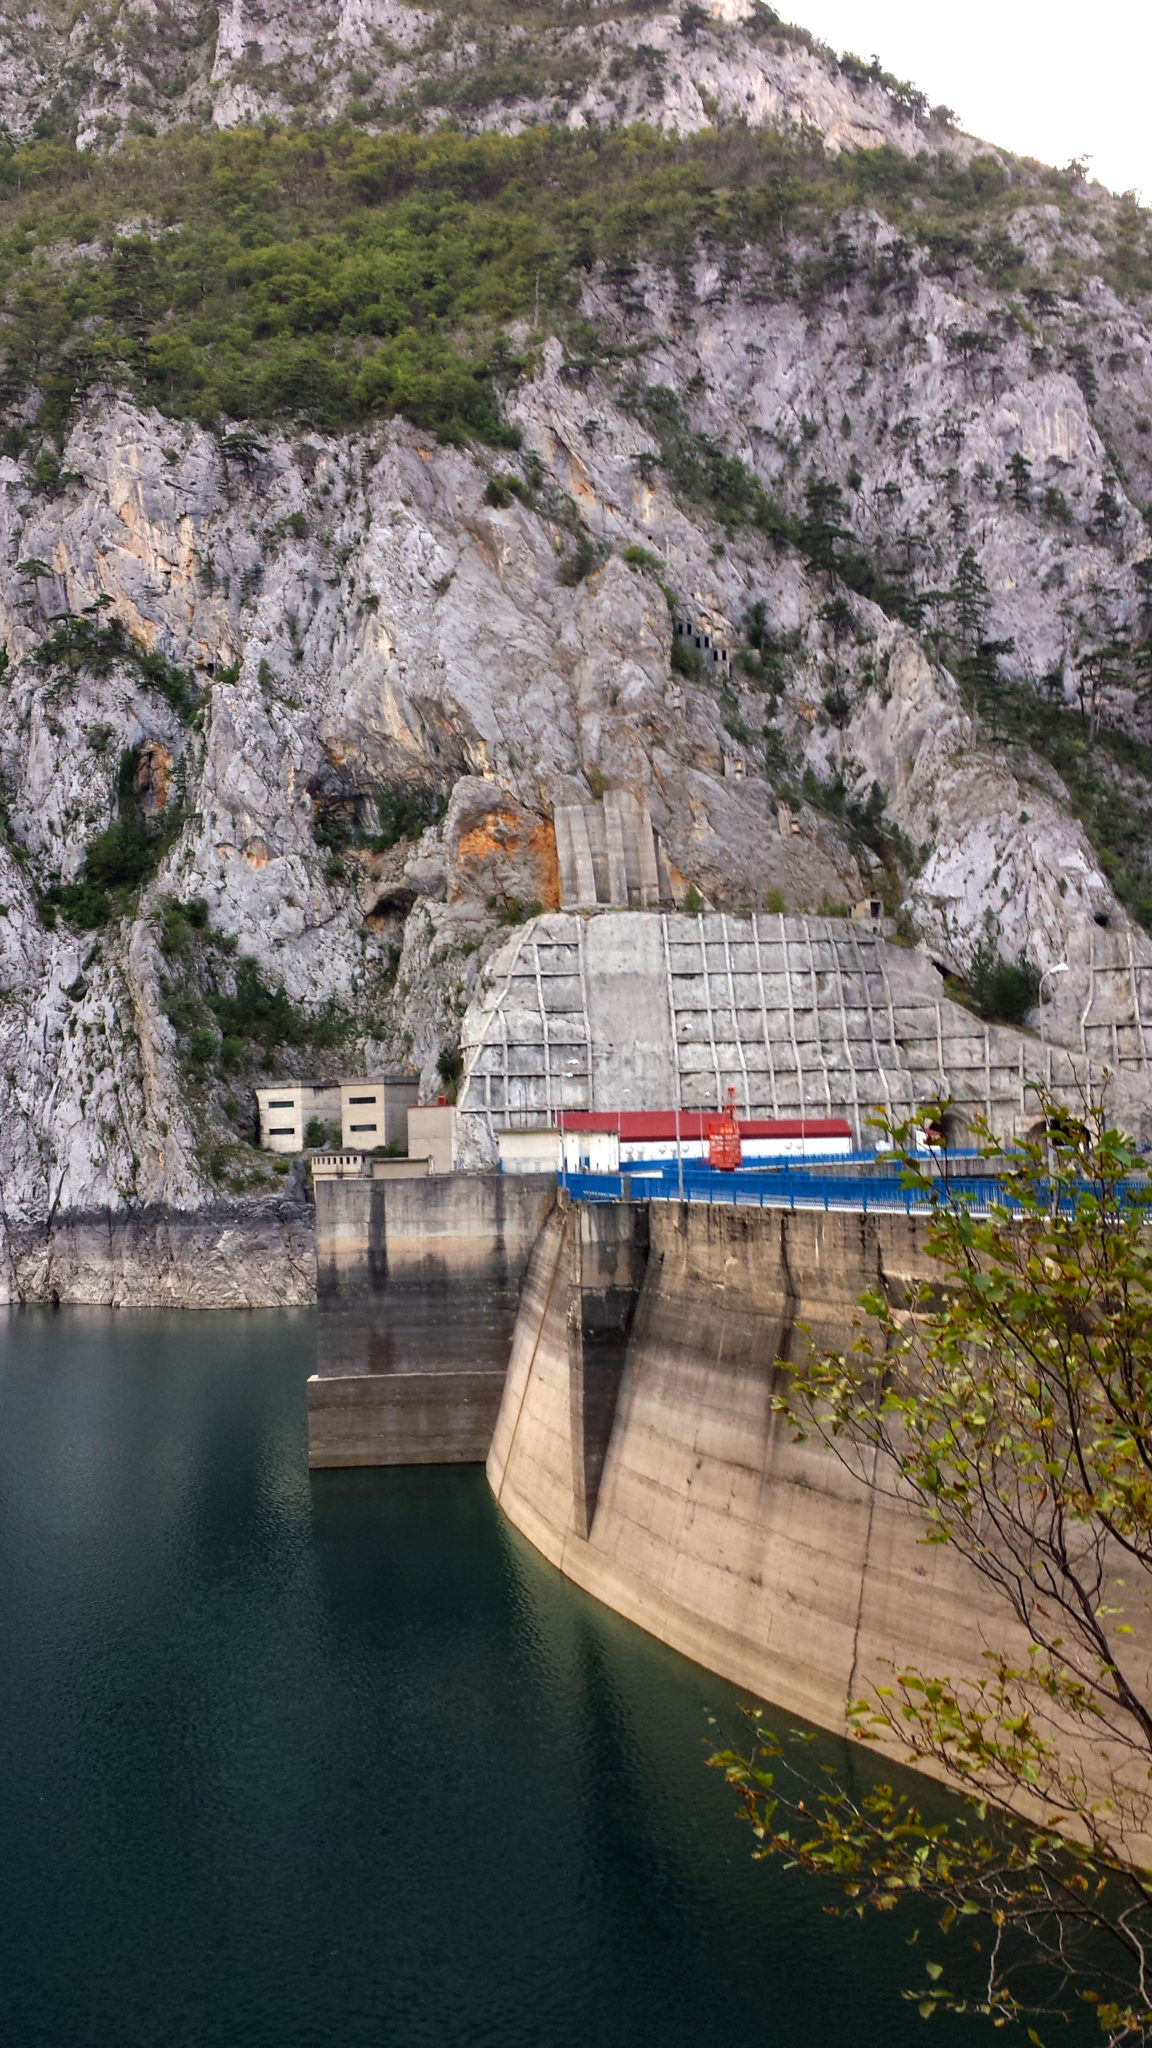 Hemaposesesvalises_montenegro_dam_barrage_travel_voyage_blog4